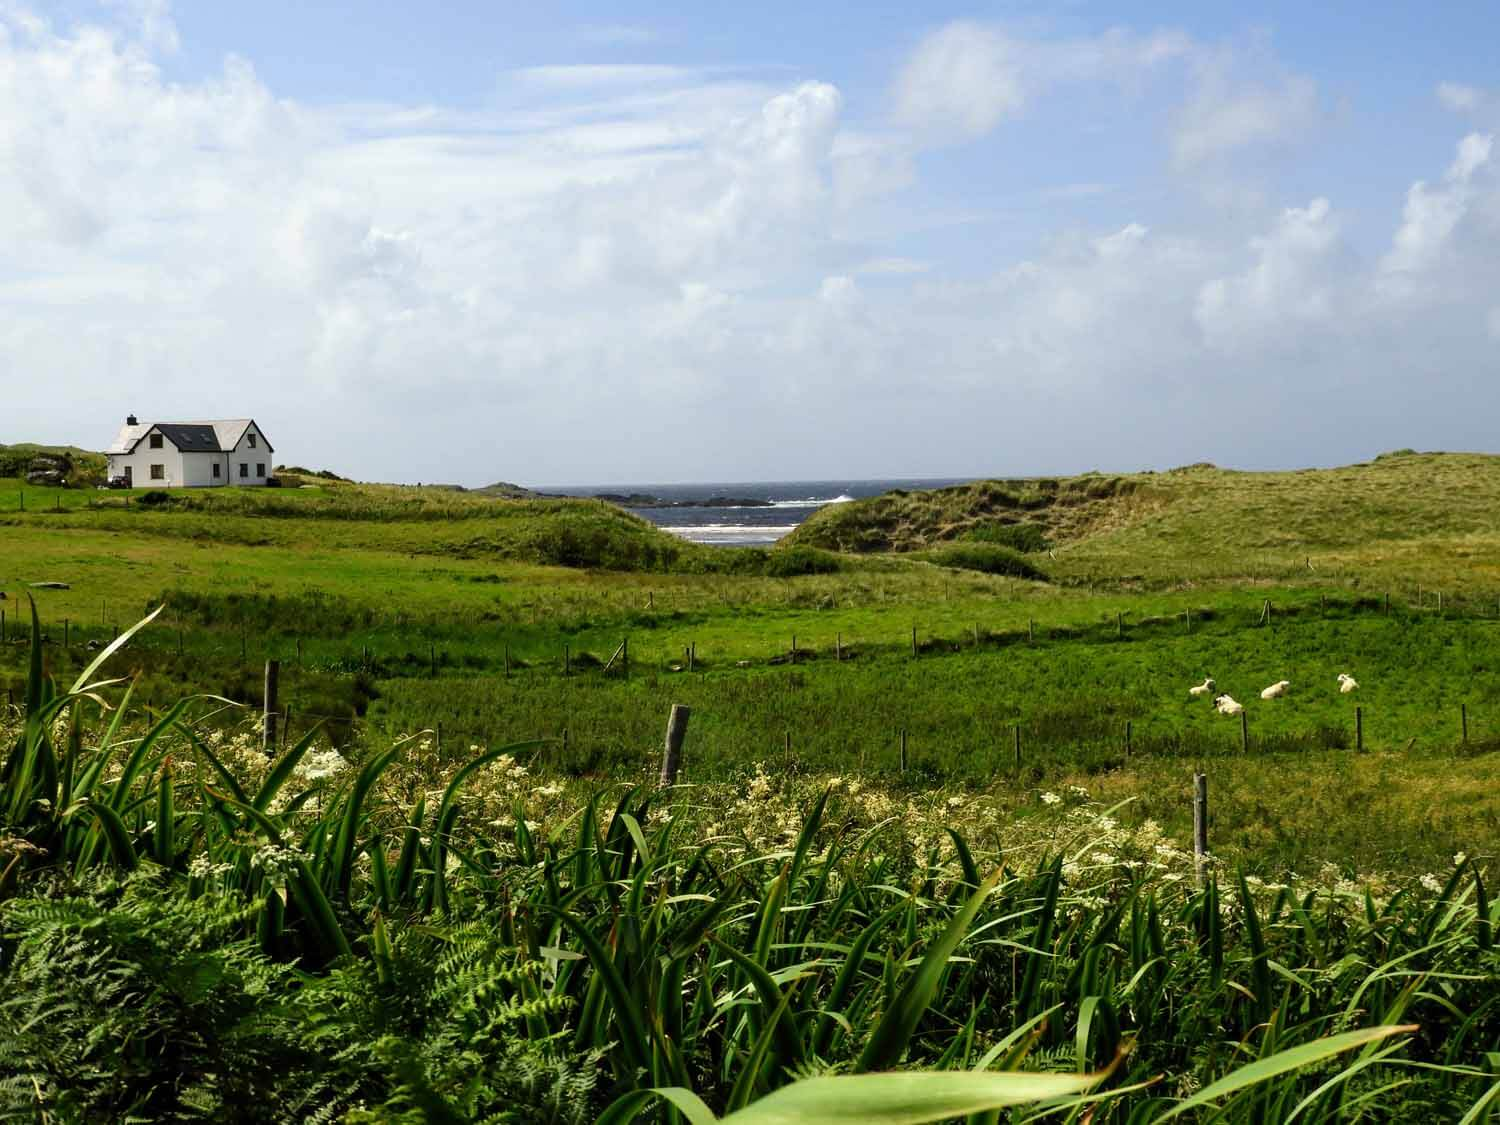 ireland-donegal-glencolumbkille-gleann-cholm-cille-fields-beach.jpg